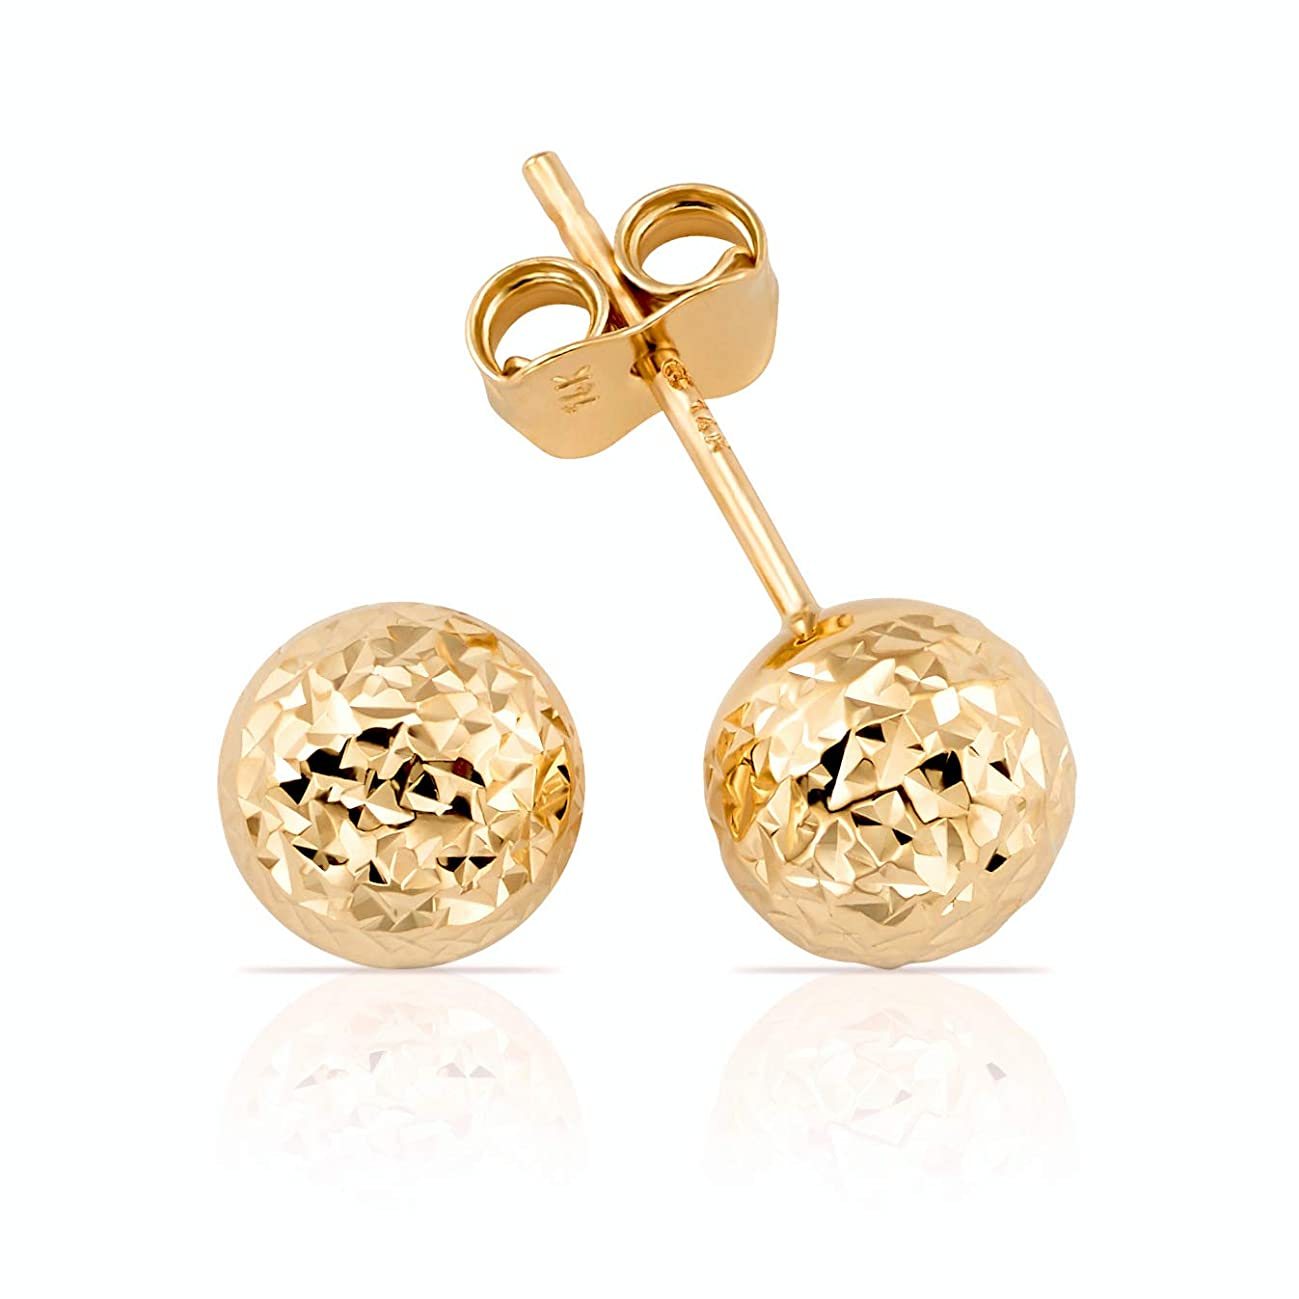 Solid 14K Gold Hammered Finish Ball Stud Earrings for Women and Girls